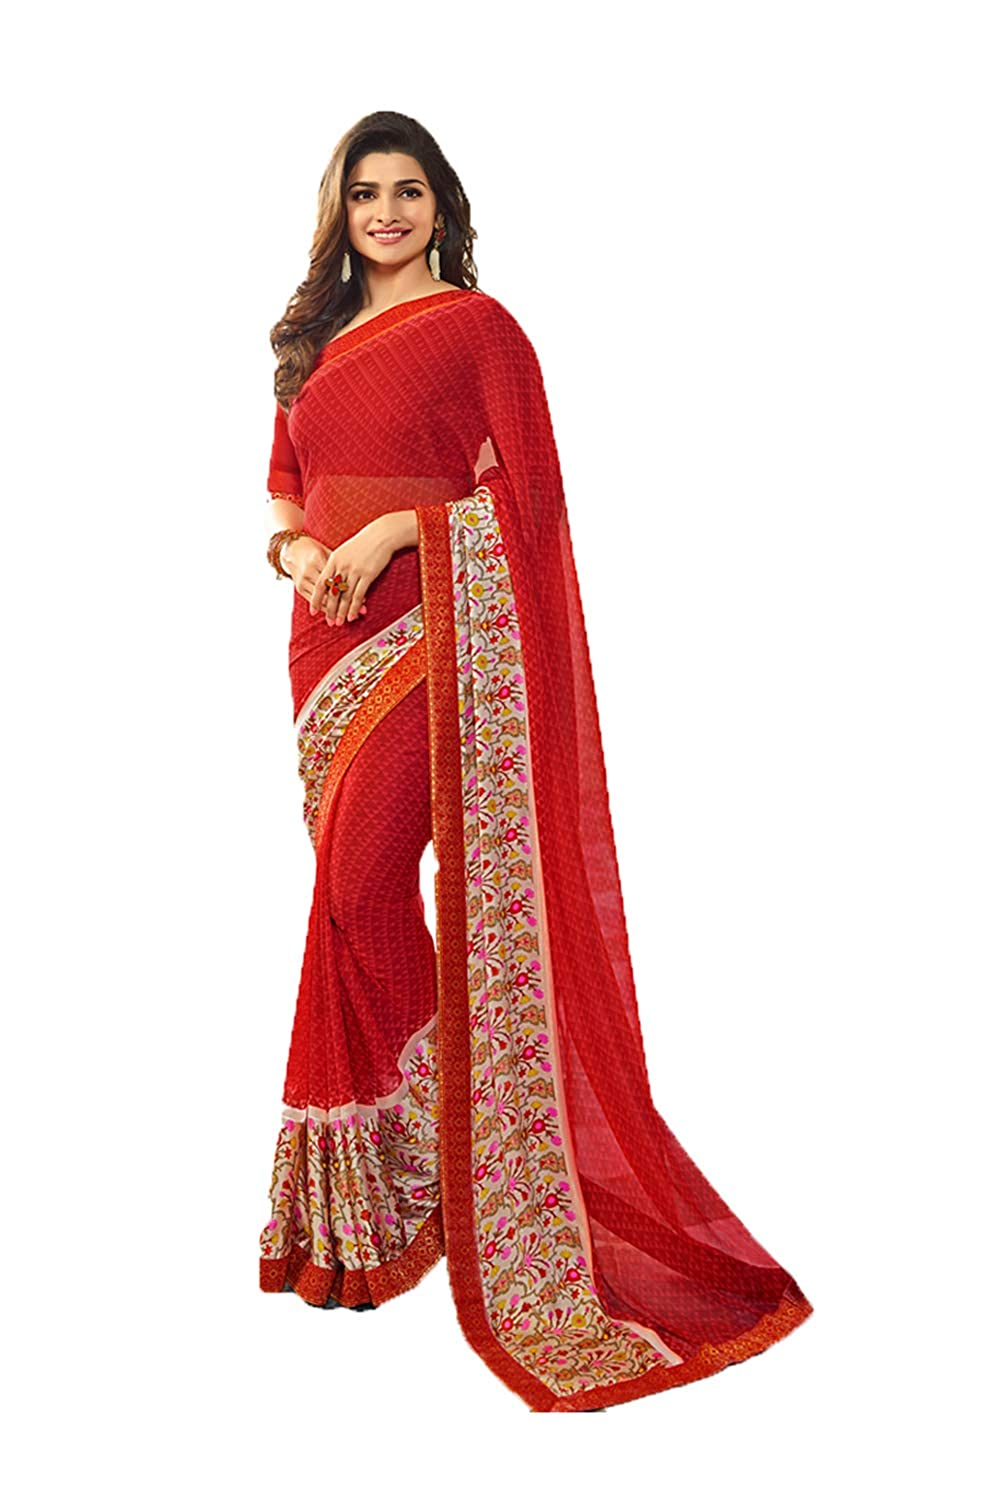 Indian Sarees for Women Wedding Designer Party Wear Traditional Red Sari. NF-R-66